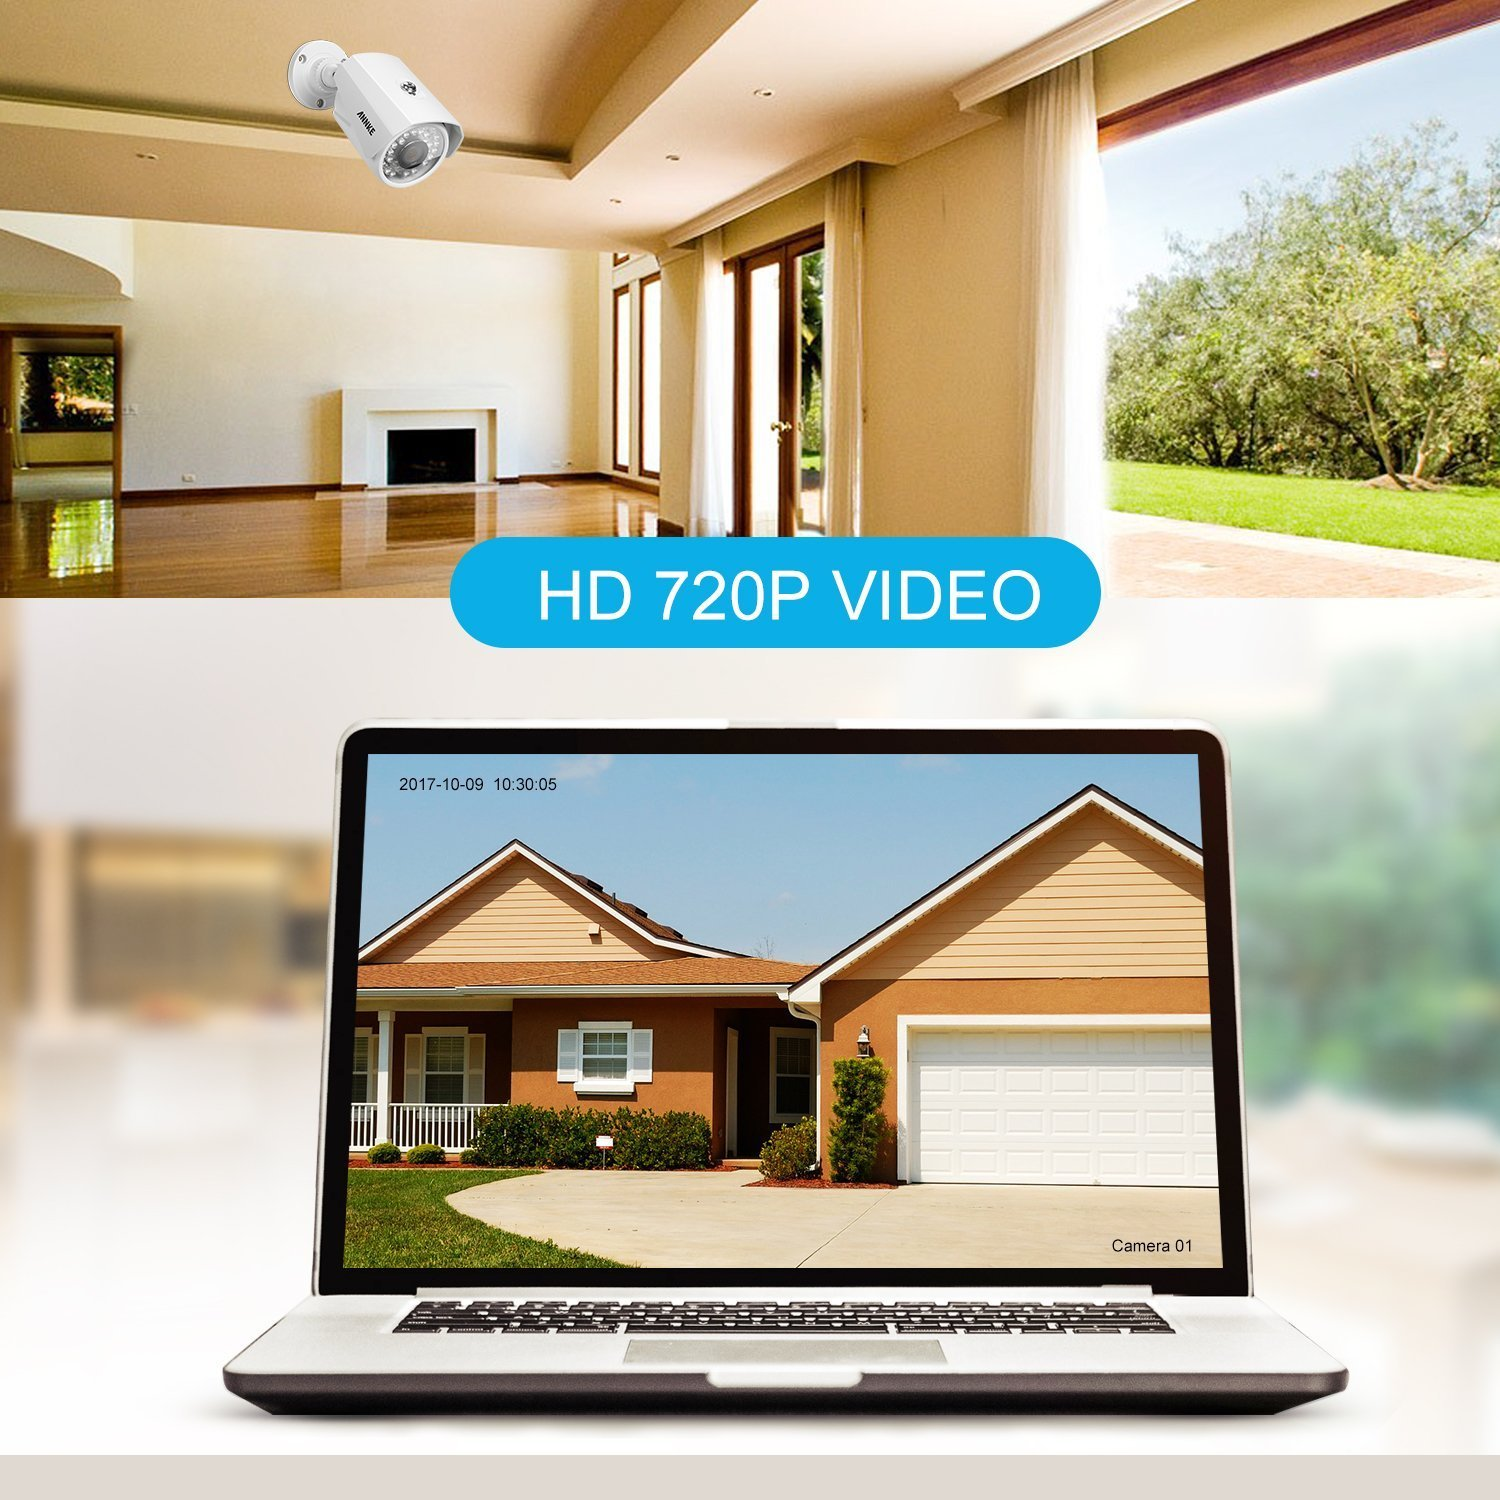 ANNKE 8CH 1080P Lite HD-TVI Surveillance DVR Camera System and 4x1.0MP Indoor/Outdoor Weatherproof Day/Night Metal CCTV Camera, NO Hard Drive Included by ANNKE (Image #5)